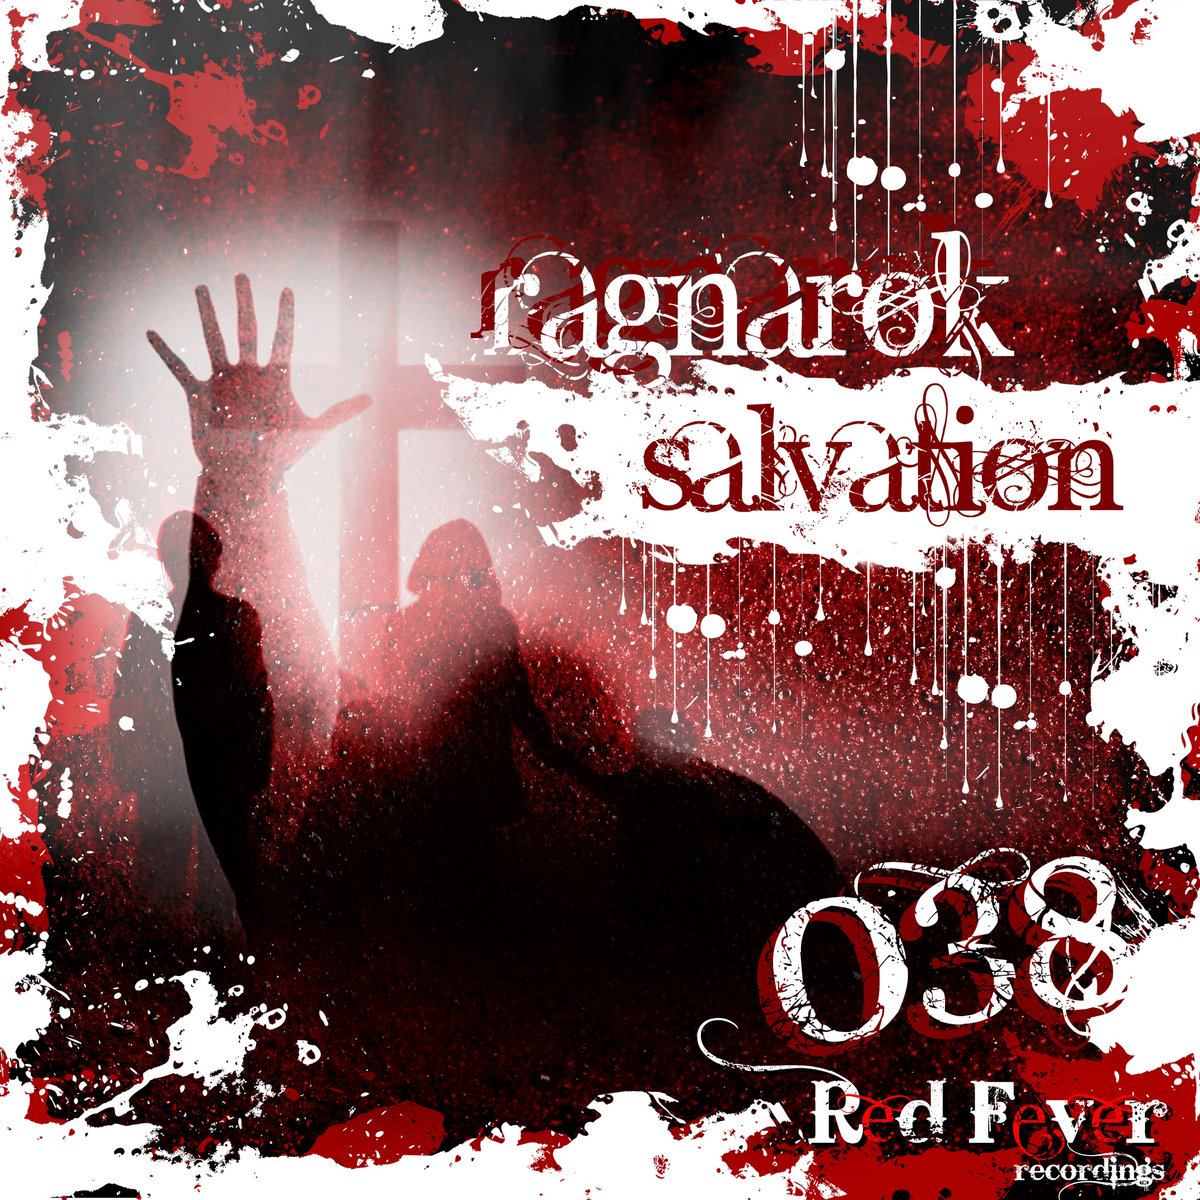 Ragnarok - Tears From Gaza @ 'Salvation' album (electronic, gabber)